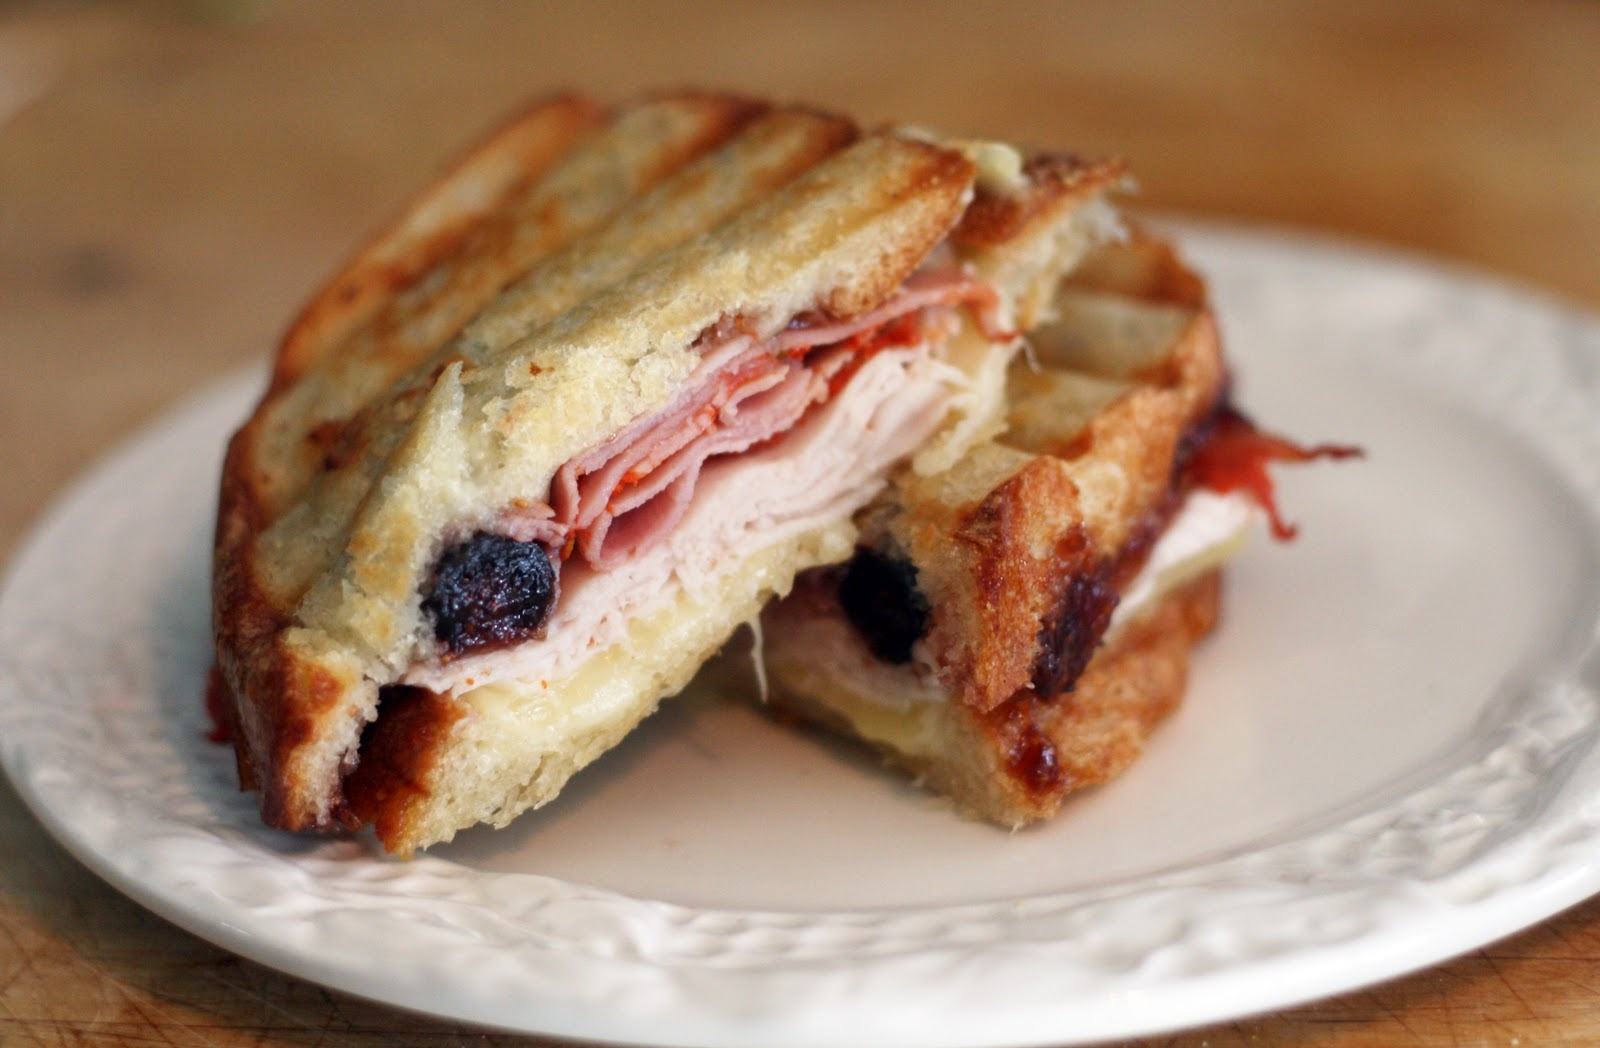 Recipes by Rachel Rappaport: Turkey, Fig & Capicola Panini